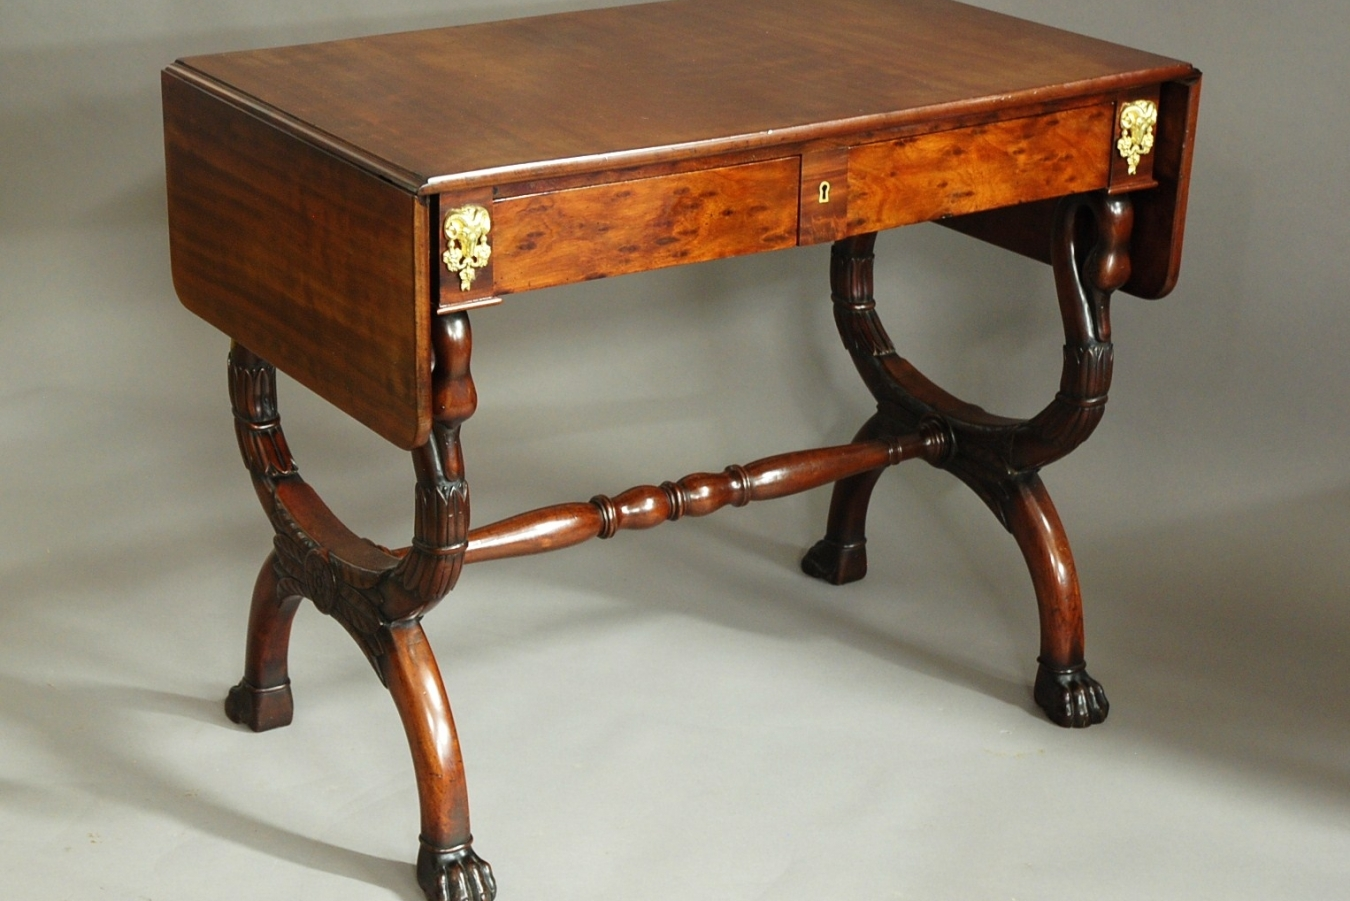 Sofa With French Writing French Empire Sofa Table Trendfirst